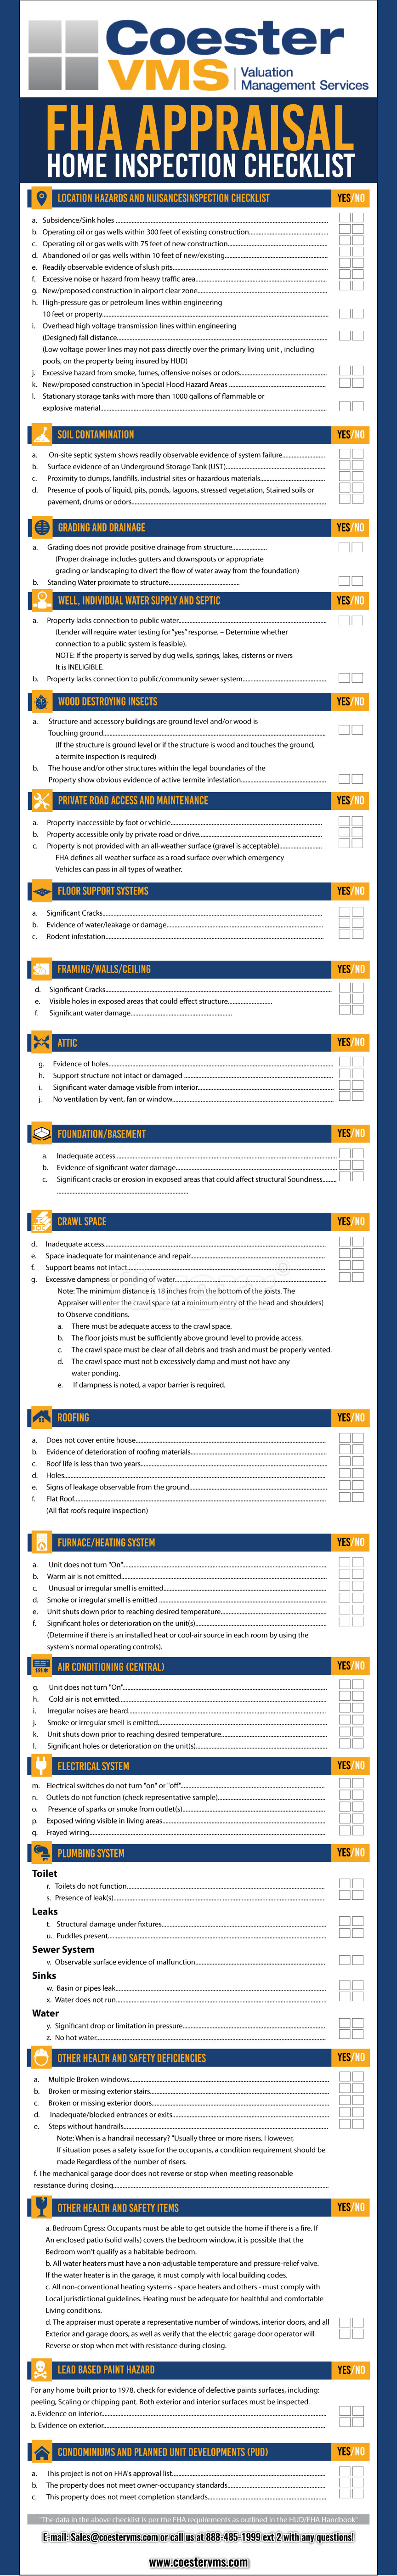 FHA Checklist graphic